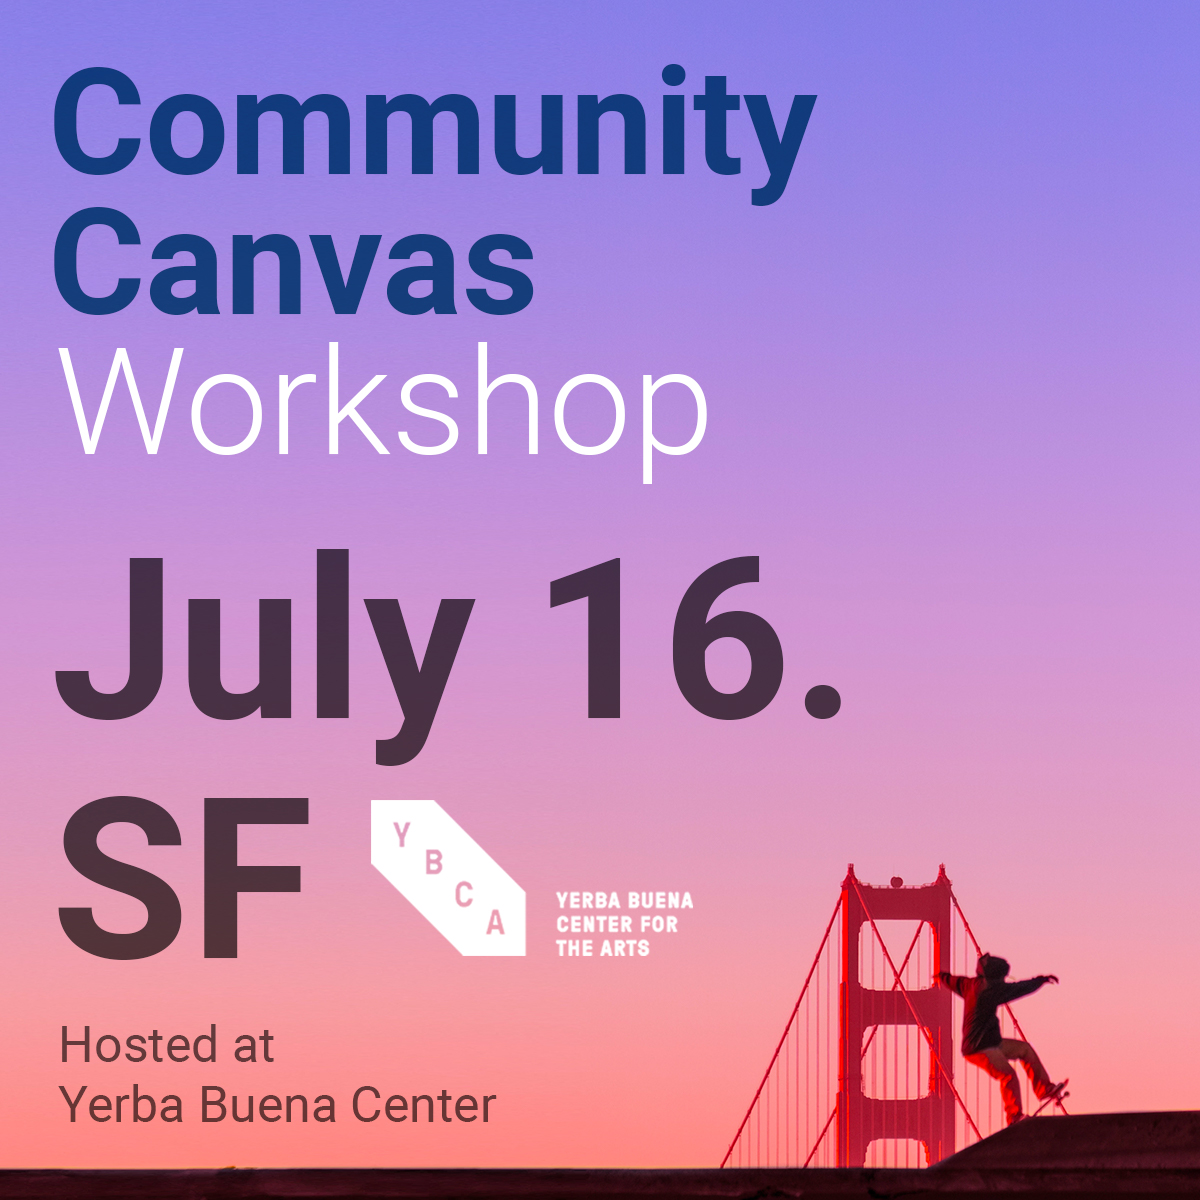 Community Canvas Workshop SF July 16 Yerba.jpg